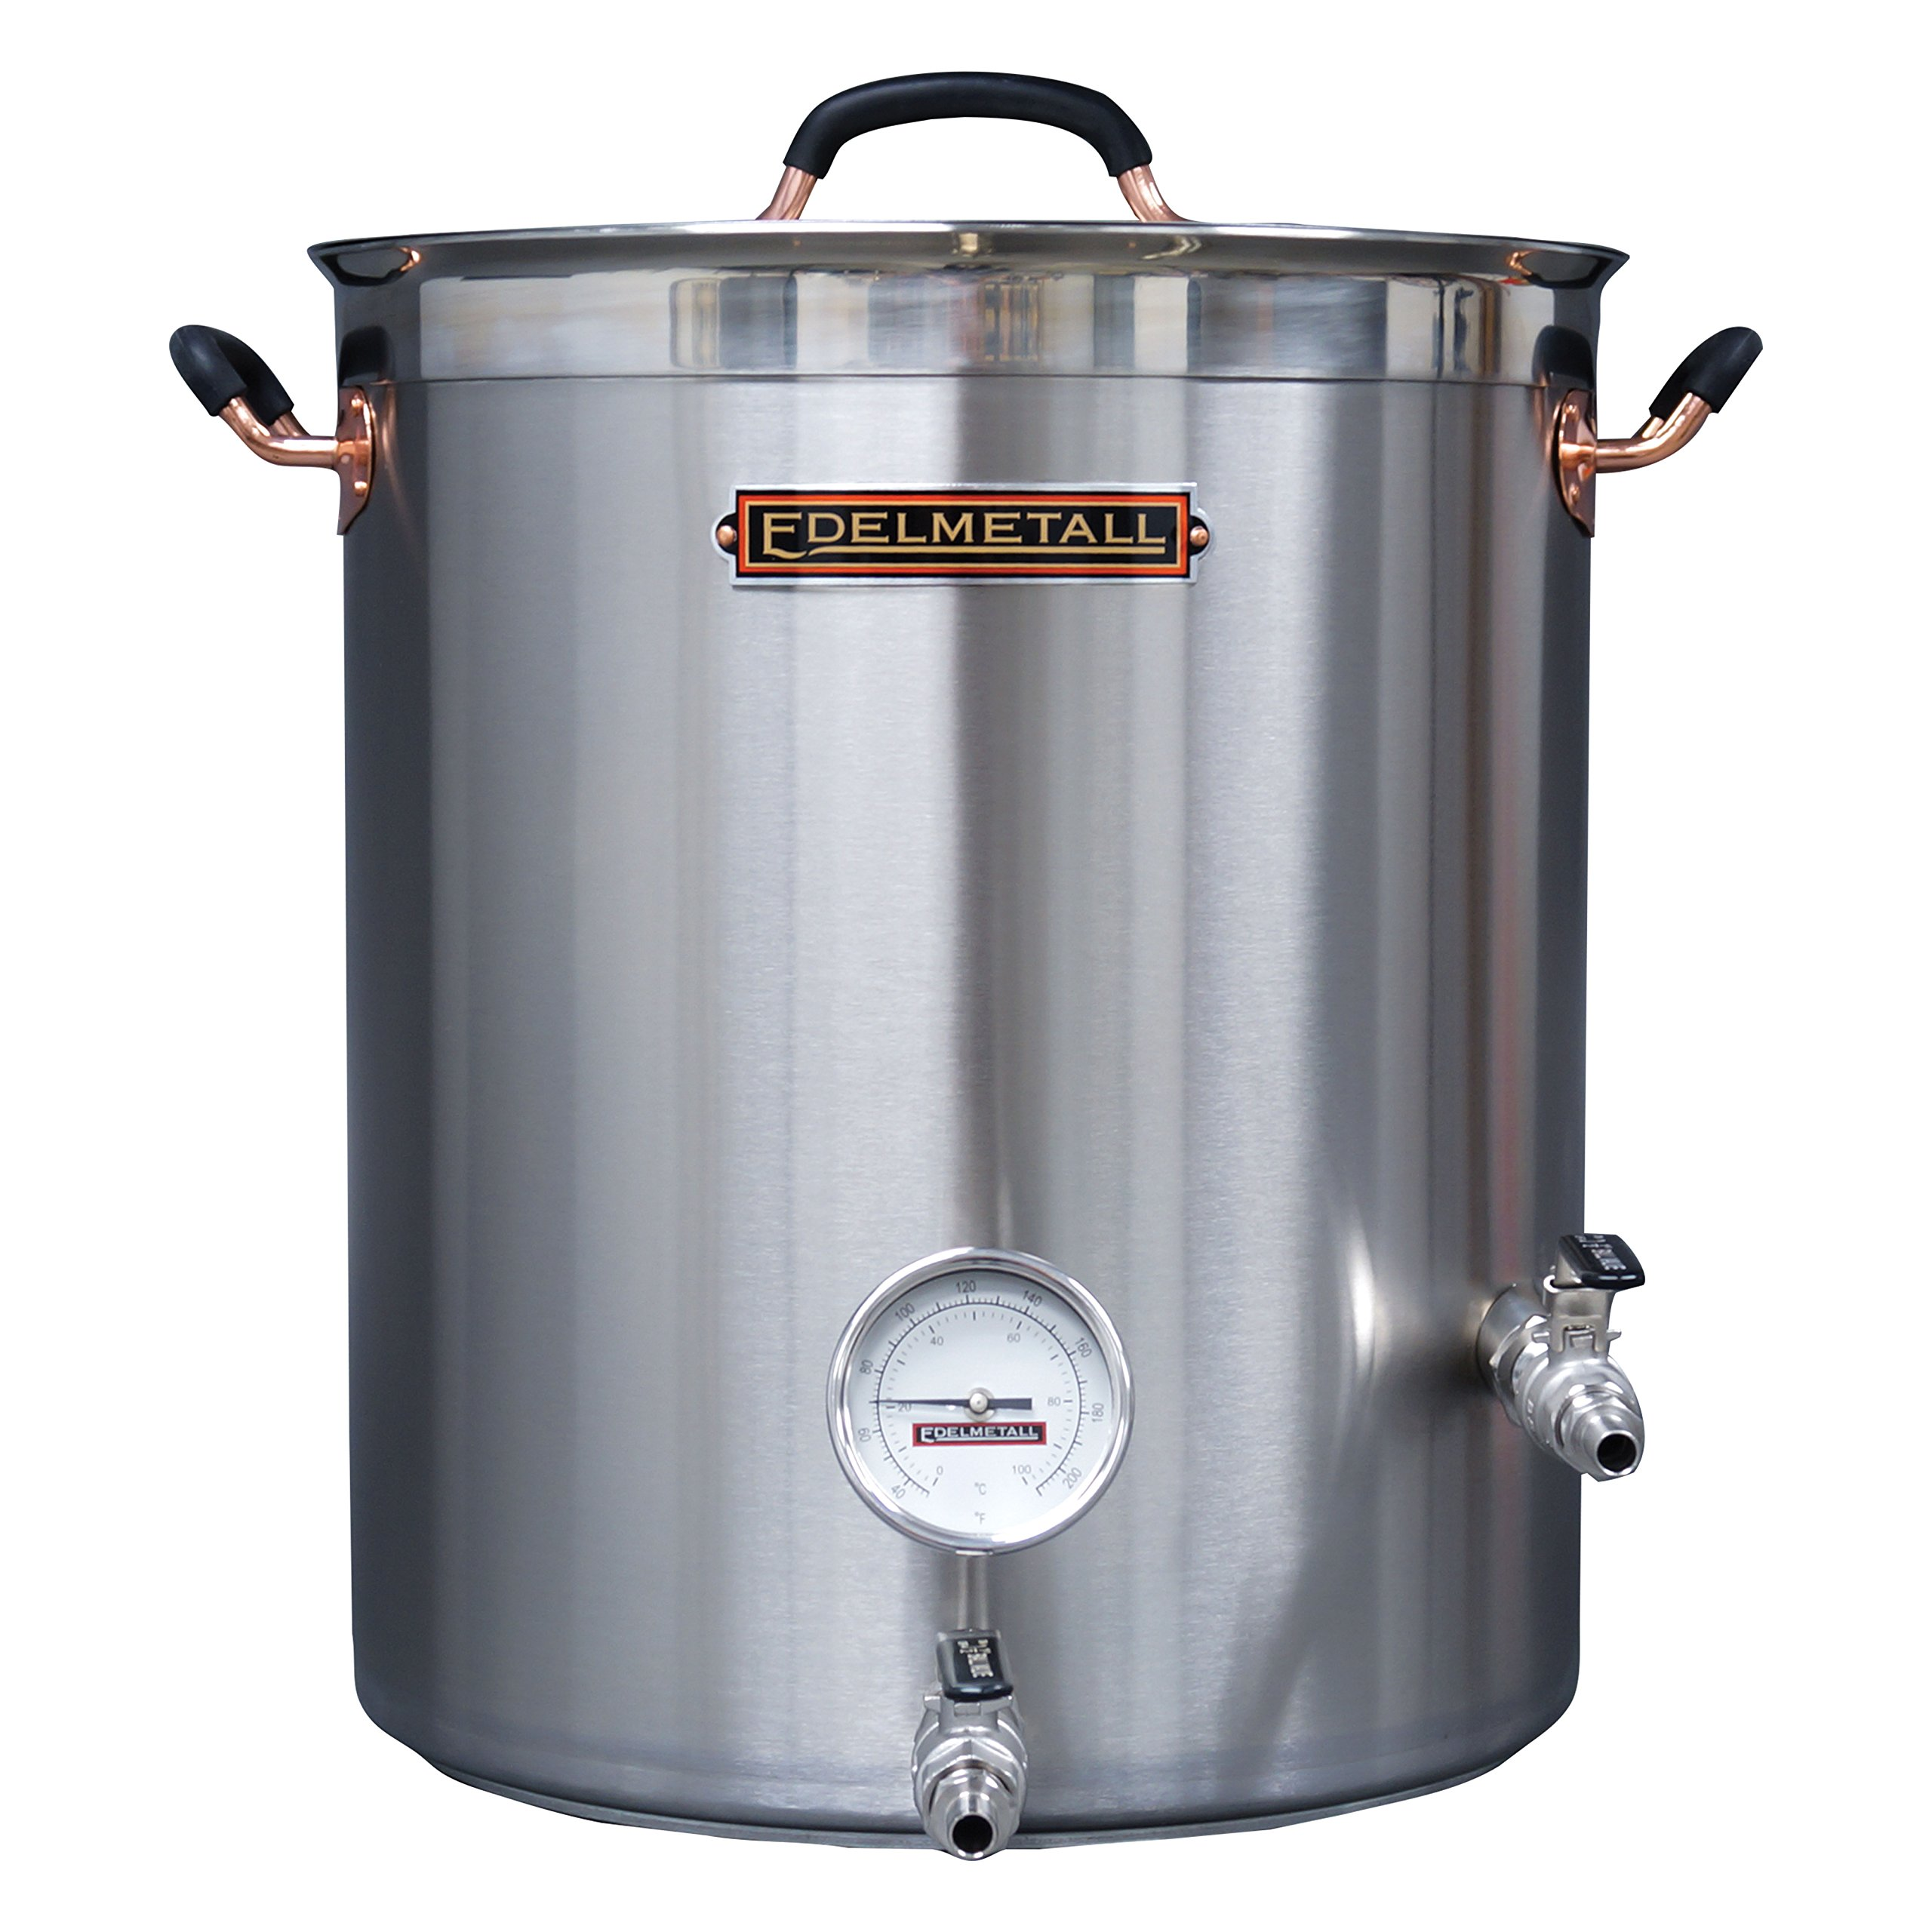 Northern Brewer - Edelmetall Bru Kettle Professional Quality Brew Kettle for Homebrewing with Valve Bulkhead, Whirlpool Port & Thermometer (20 Gallon)